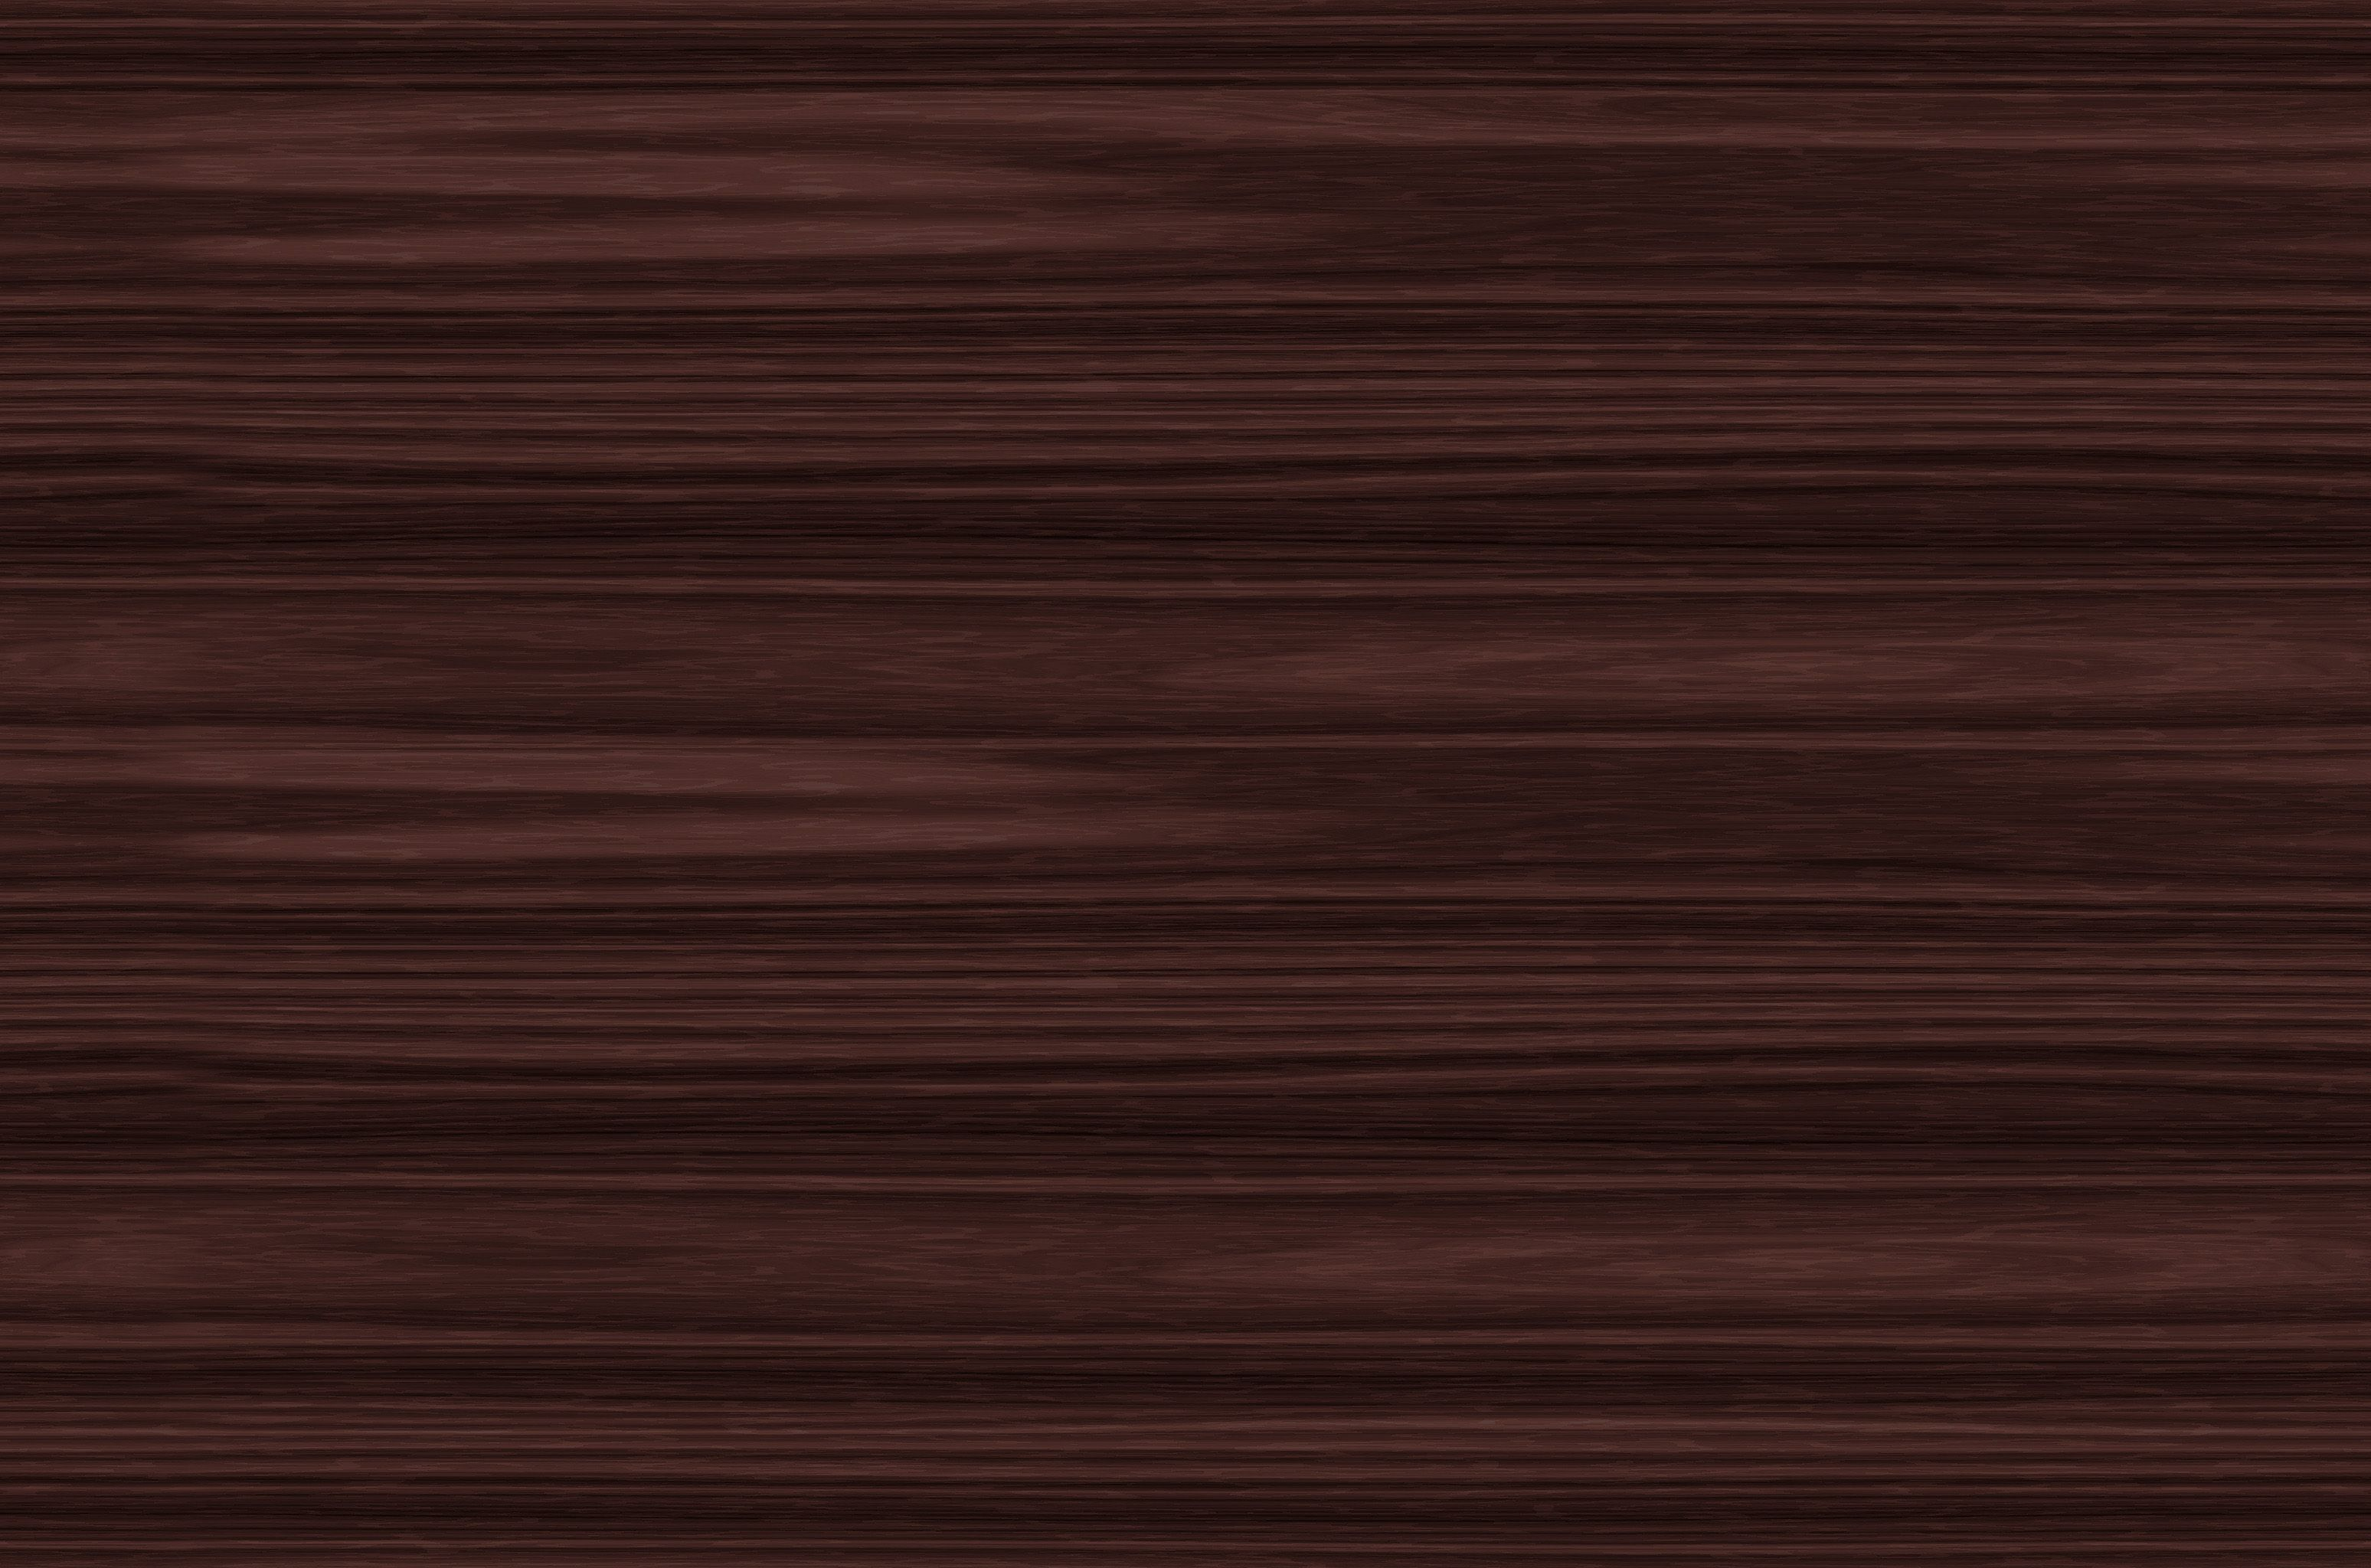 Bon Dark Brown Wood Texture